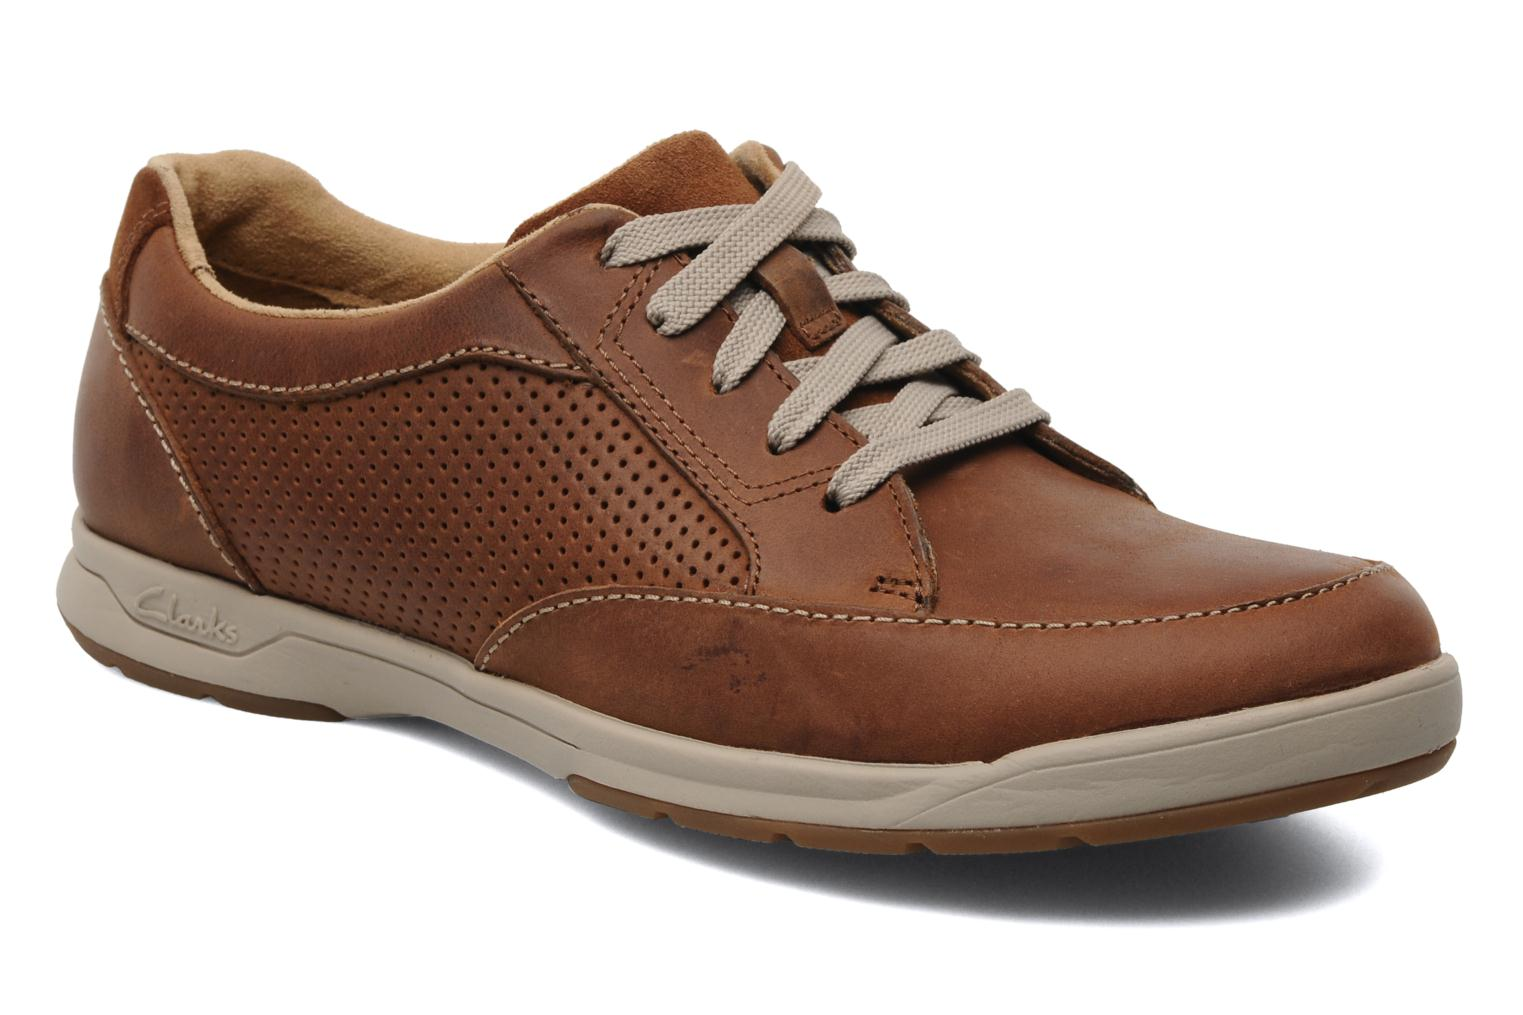 Stafford Park5 by Clarks Unstructured